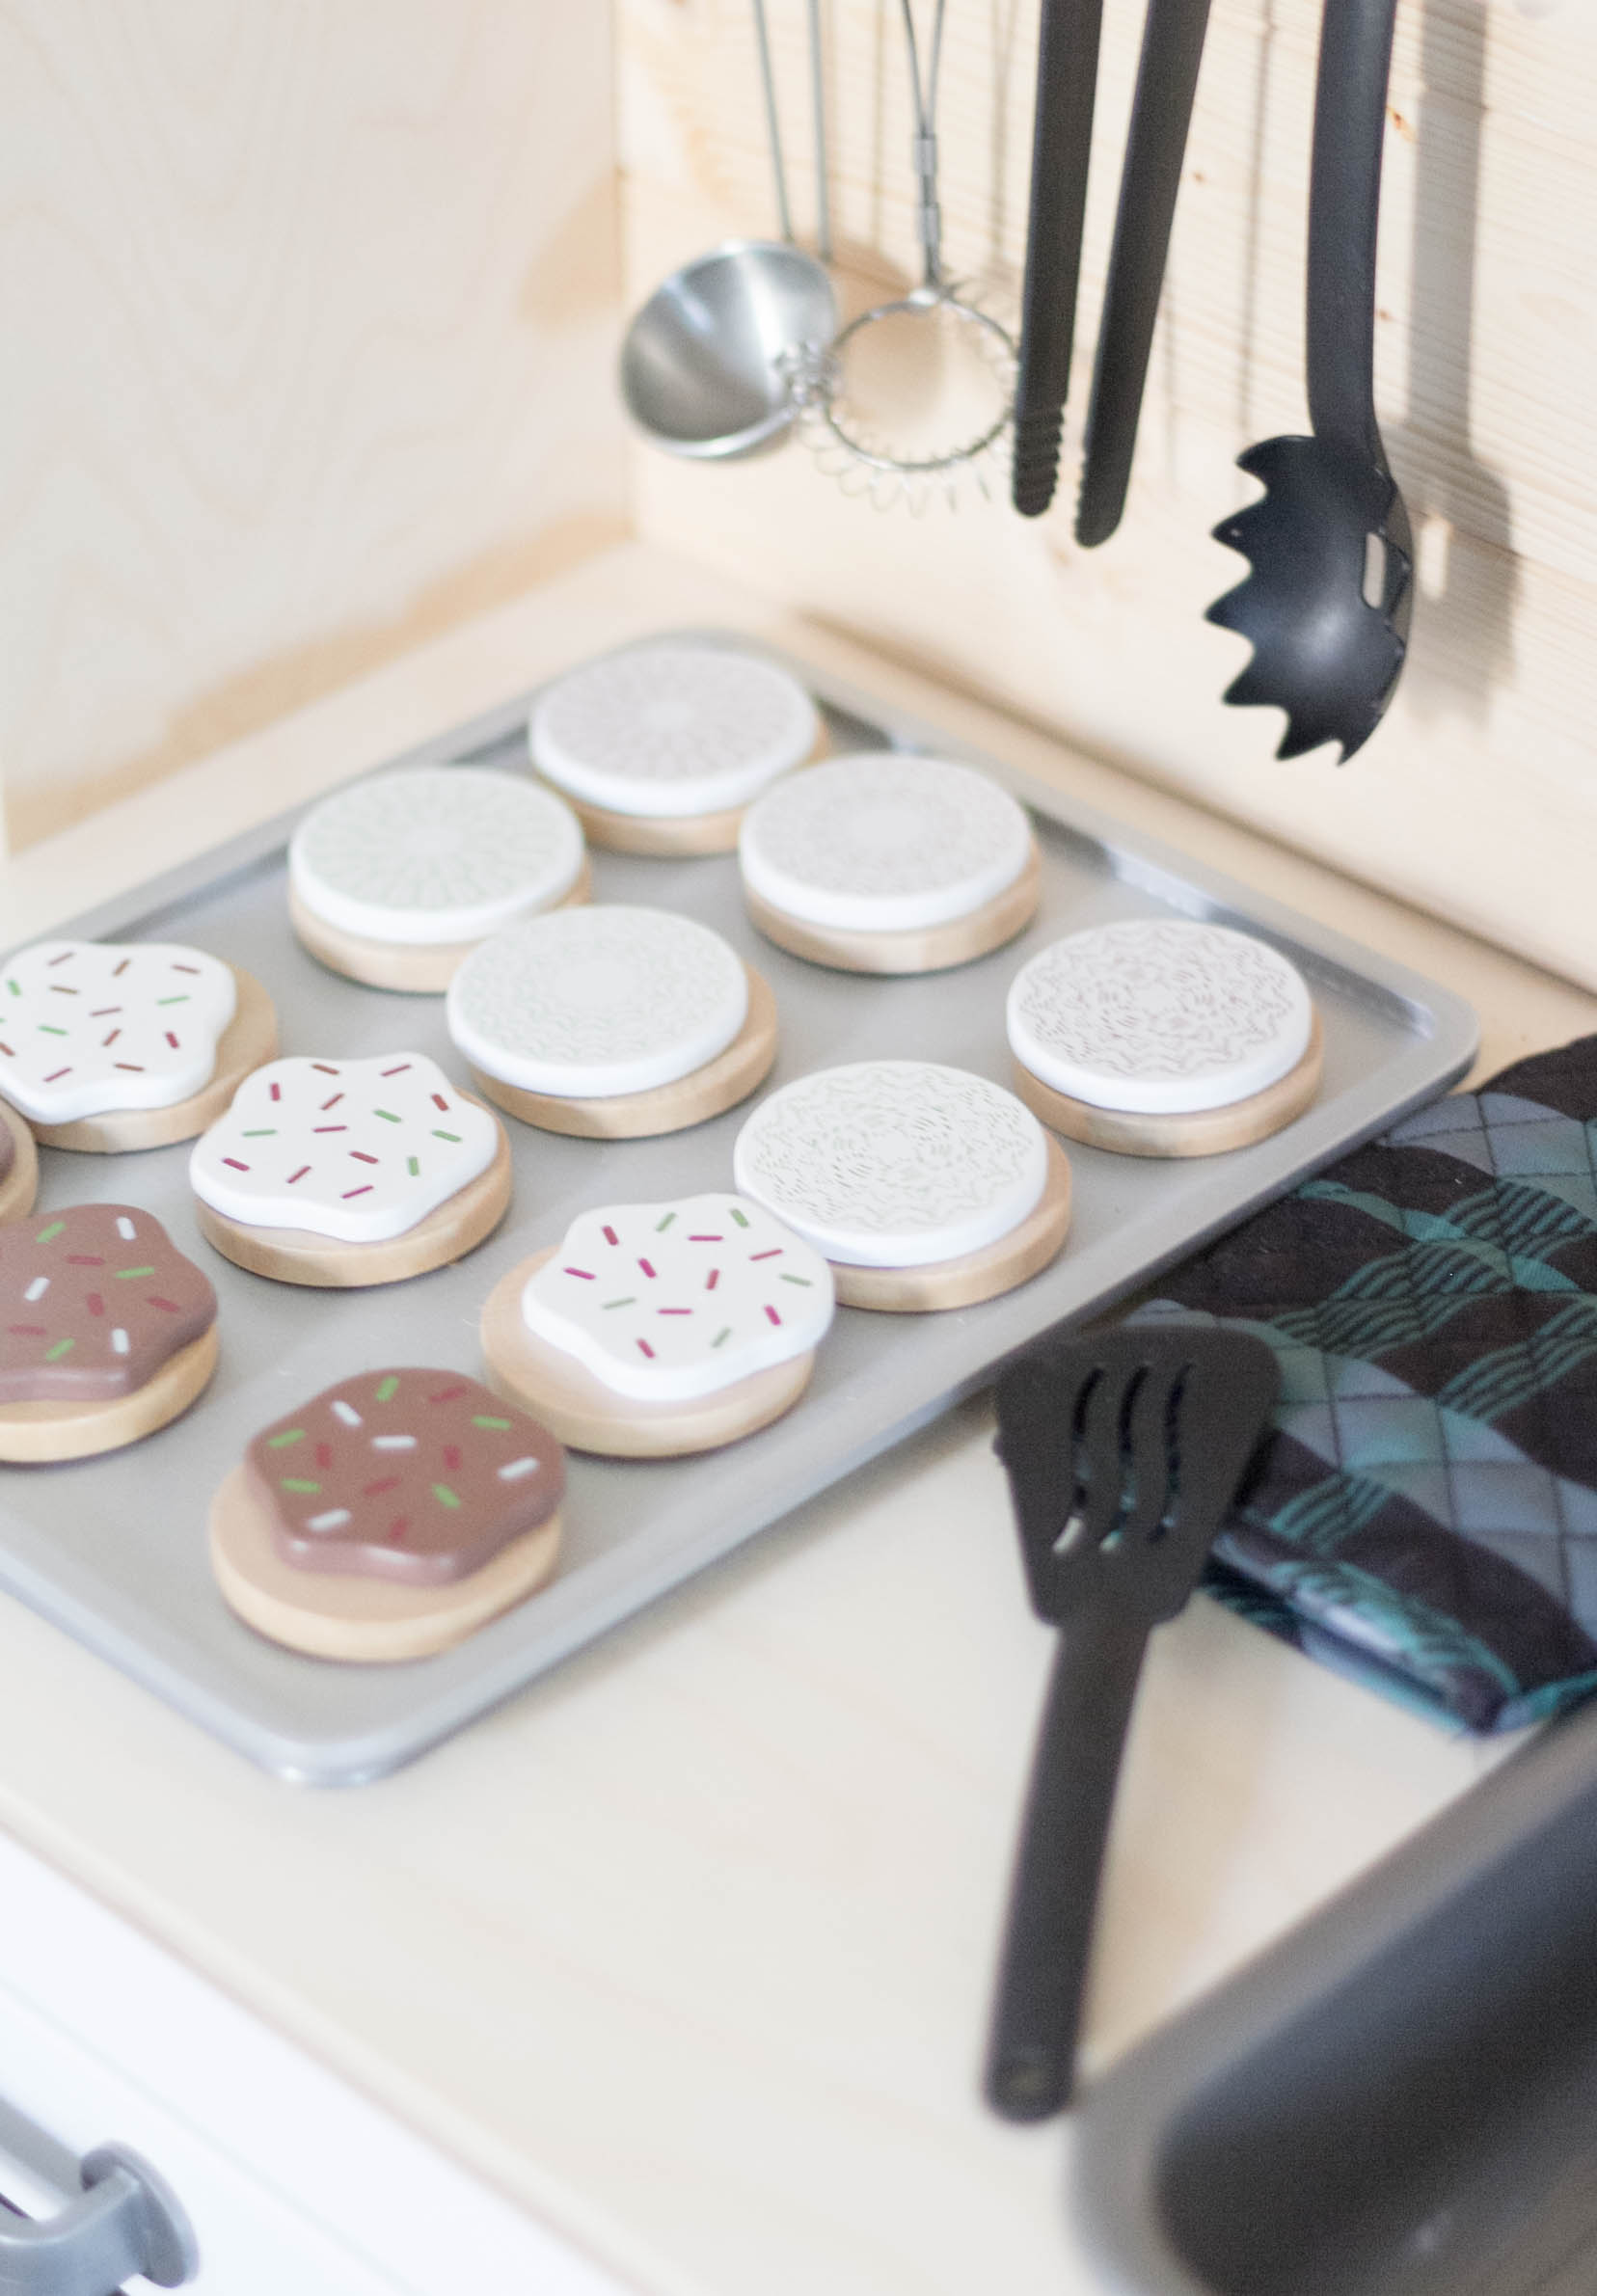 Hearth & Hand Play Cookie Set-Playroom Makeover by IrisNacole.com